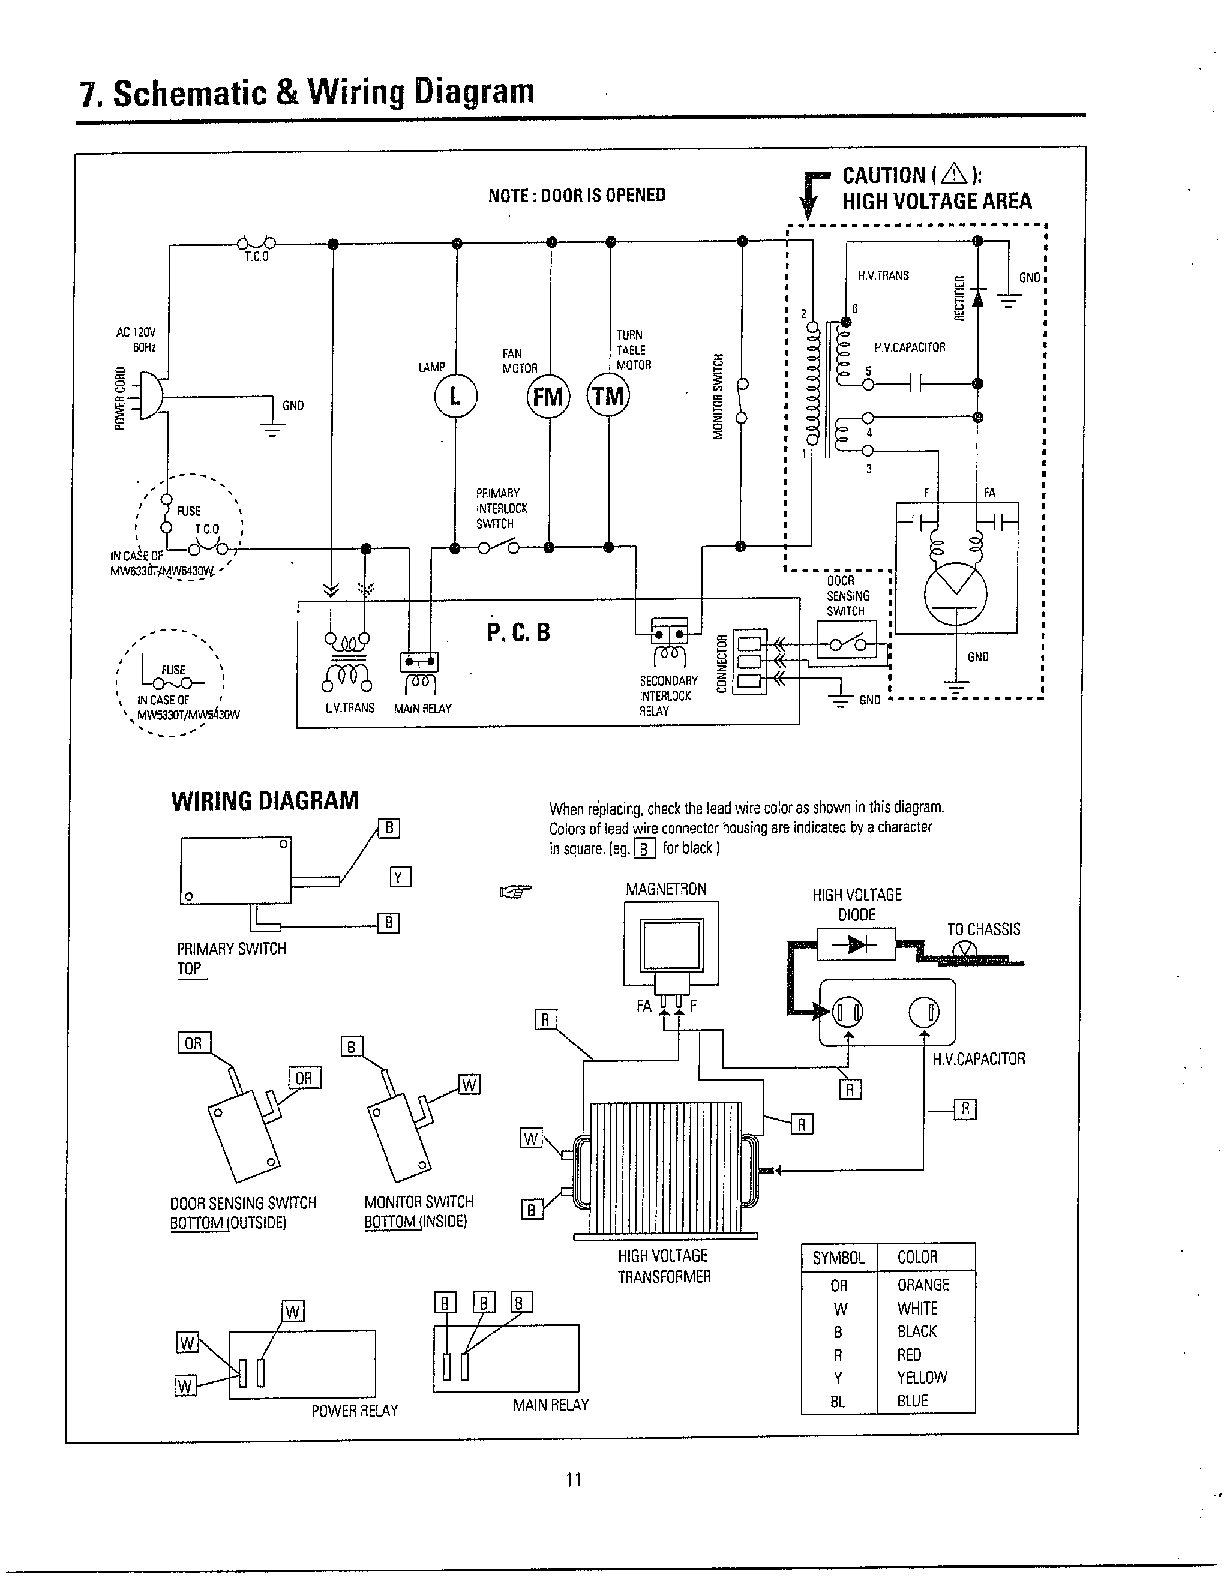 hight resolution of emerson microwave wiring diagram on emerson microwave wiring diagram diagram of 2003 bf225a3 xa honda outboard fuel pipe injector diagram